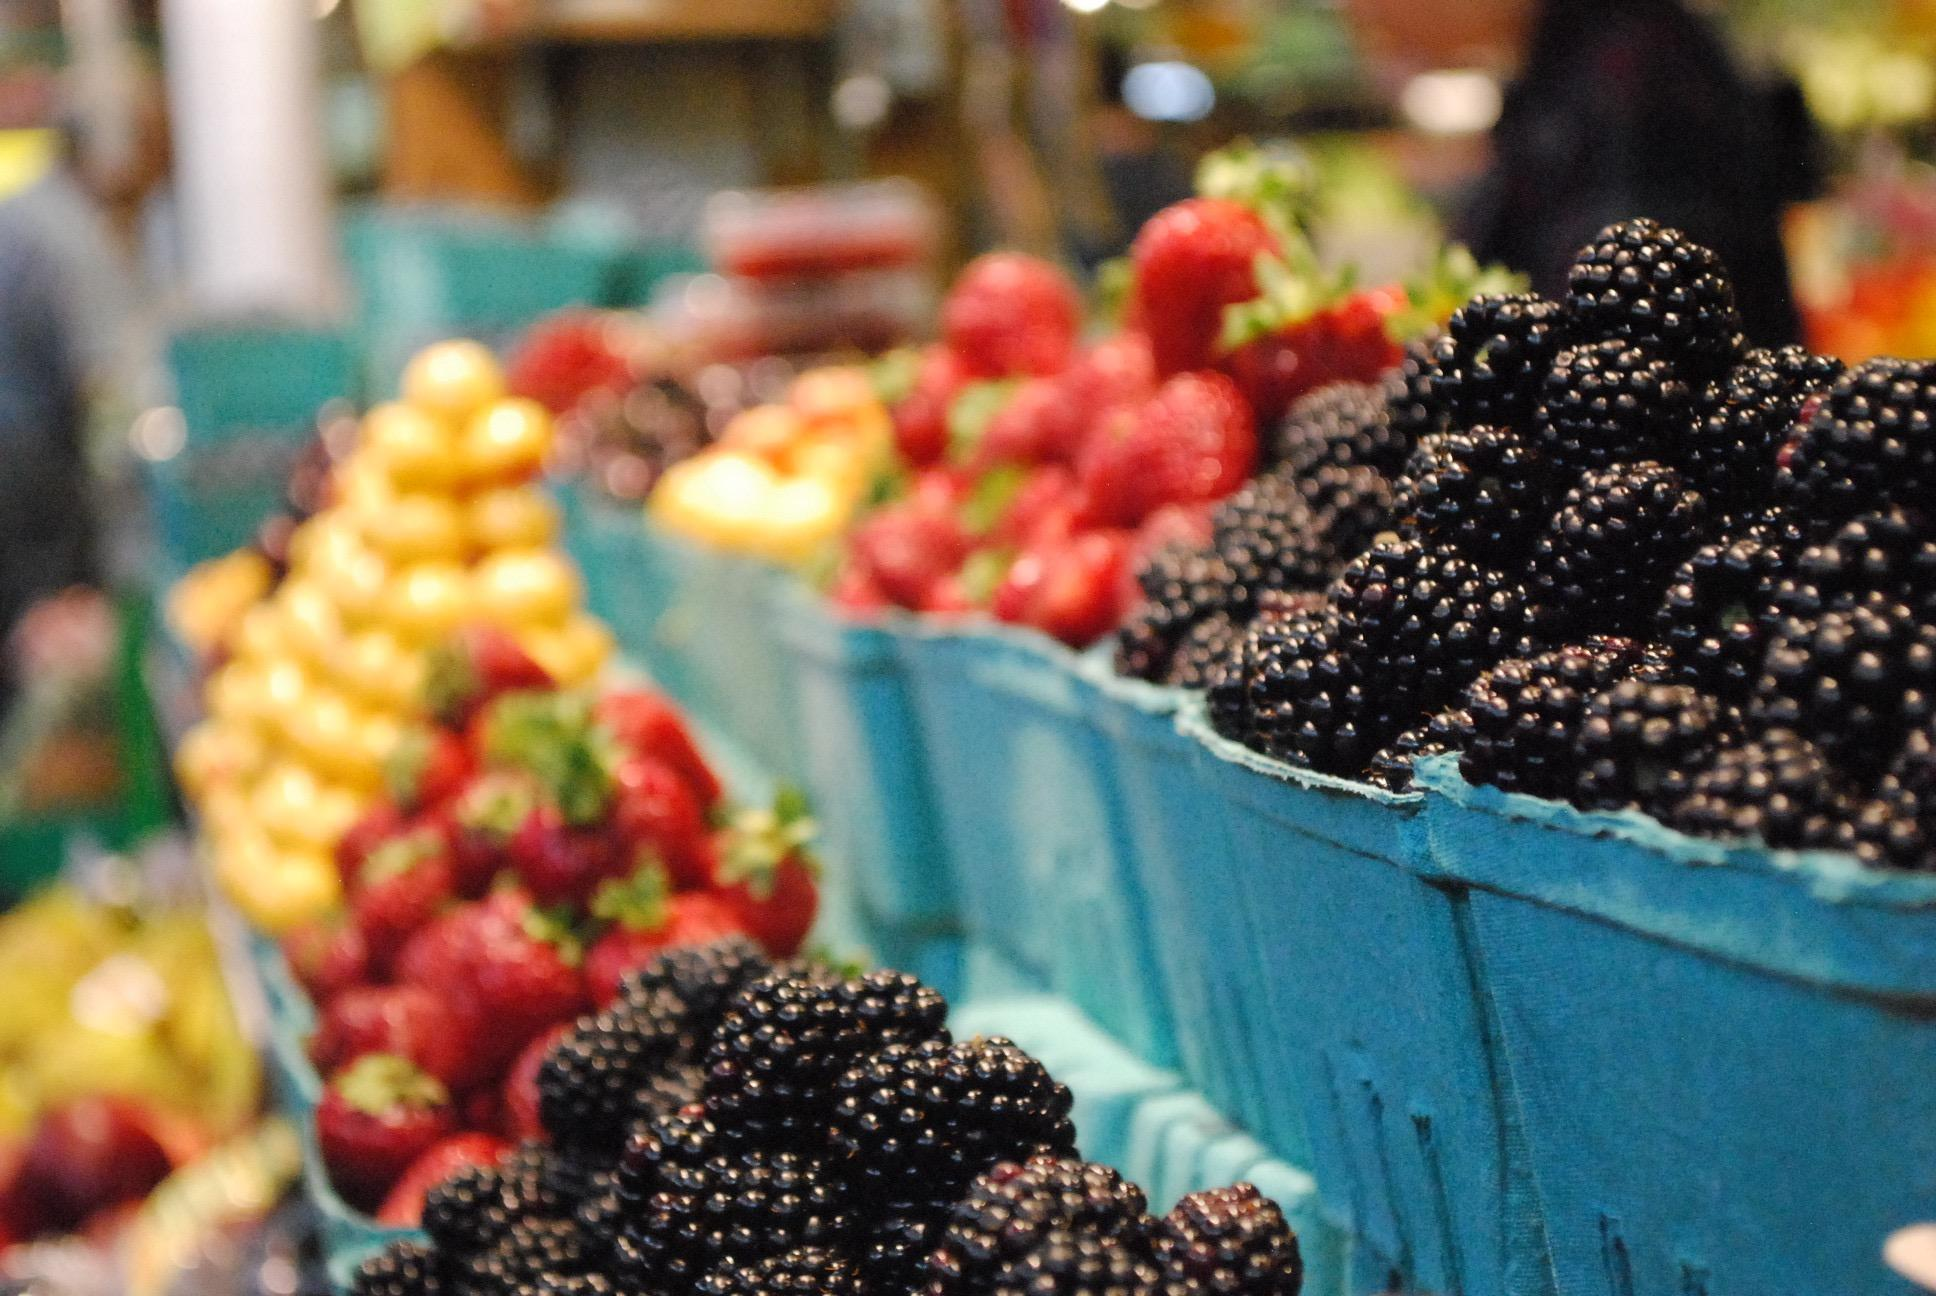 Blackberries, strawberries and other cartons of produce sit in a row